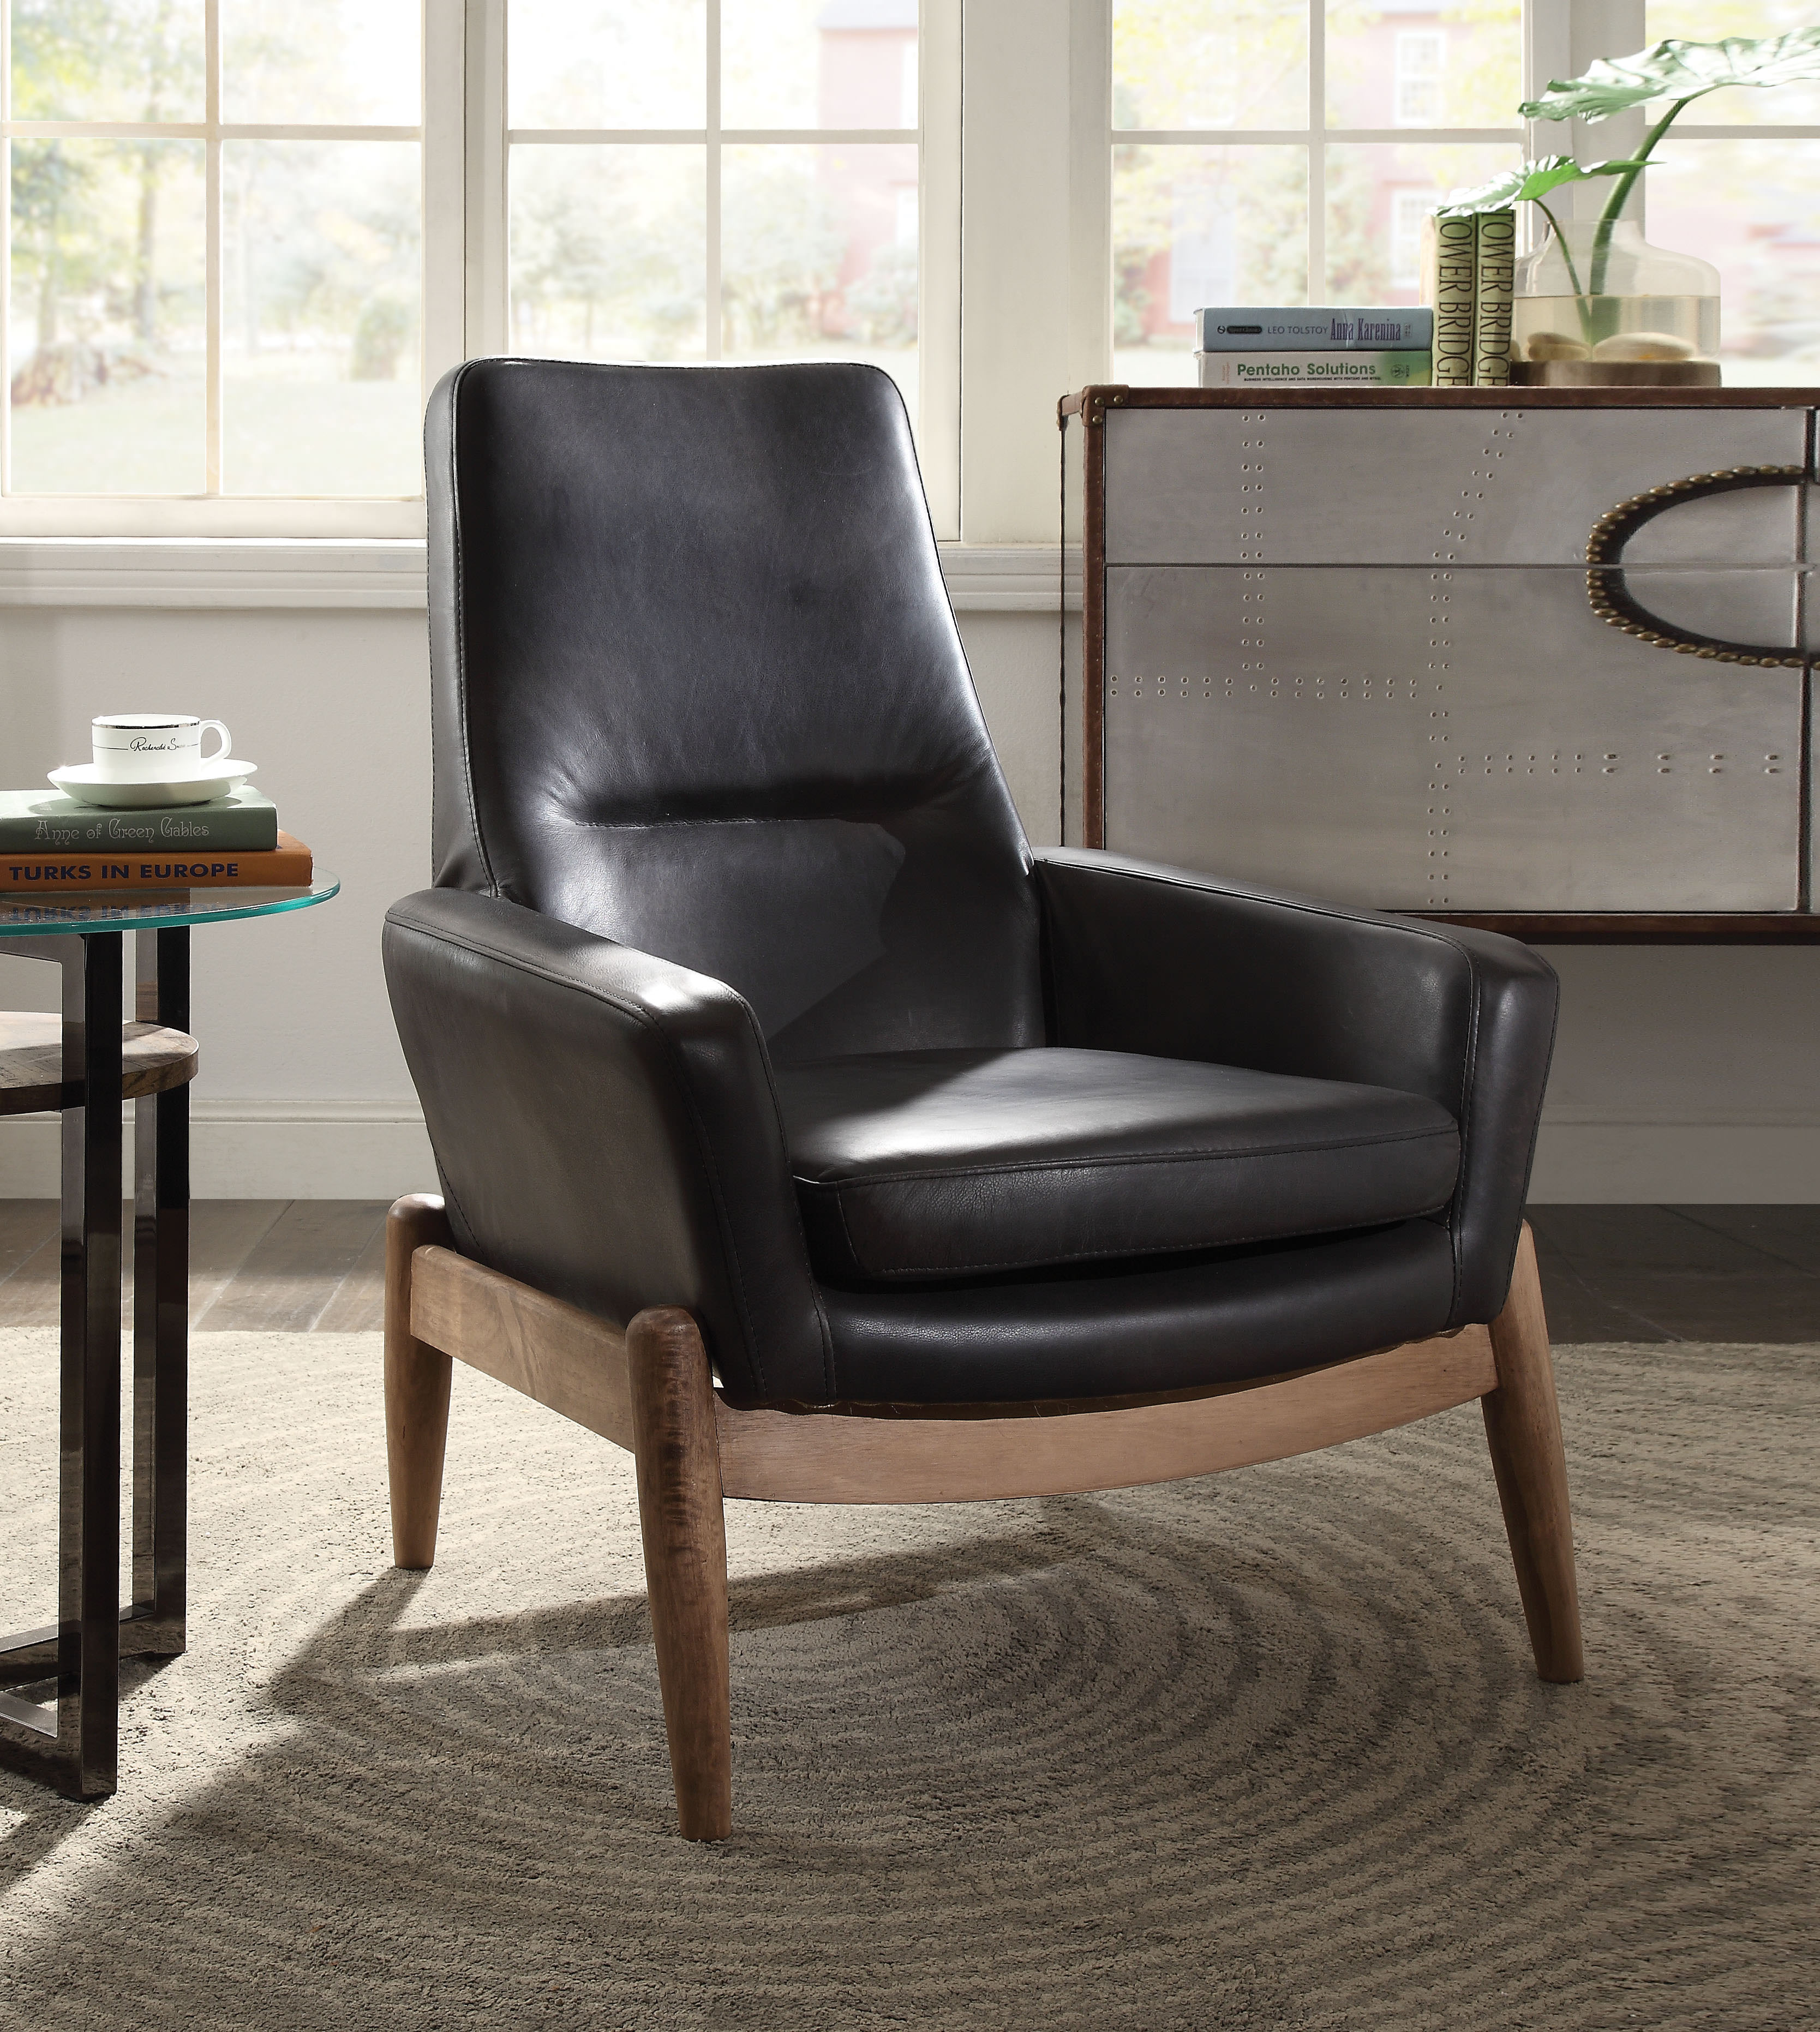 ACME Dolphin Accent Chair in Black Top Grain Leather